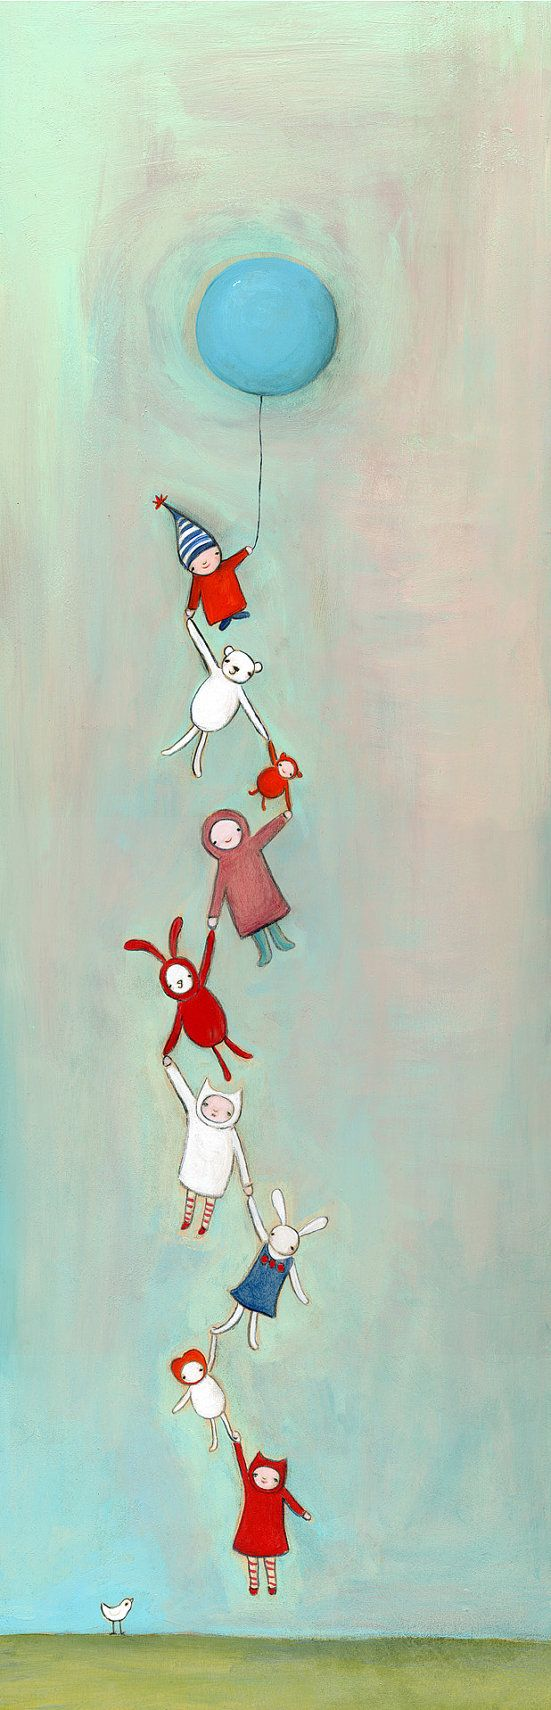 """Lovely Illustration """"We all fly together"""" Growth Chart Made by creativethursday for sale on Etsy"""